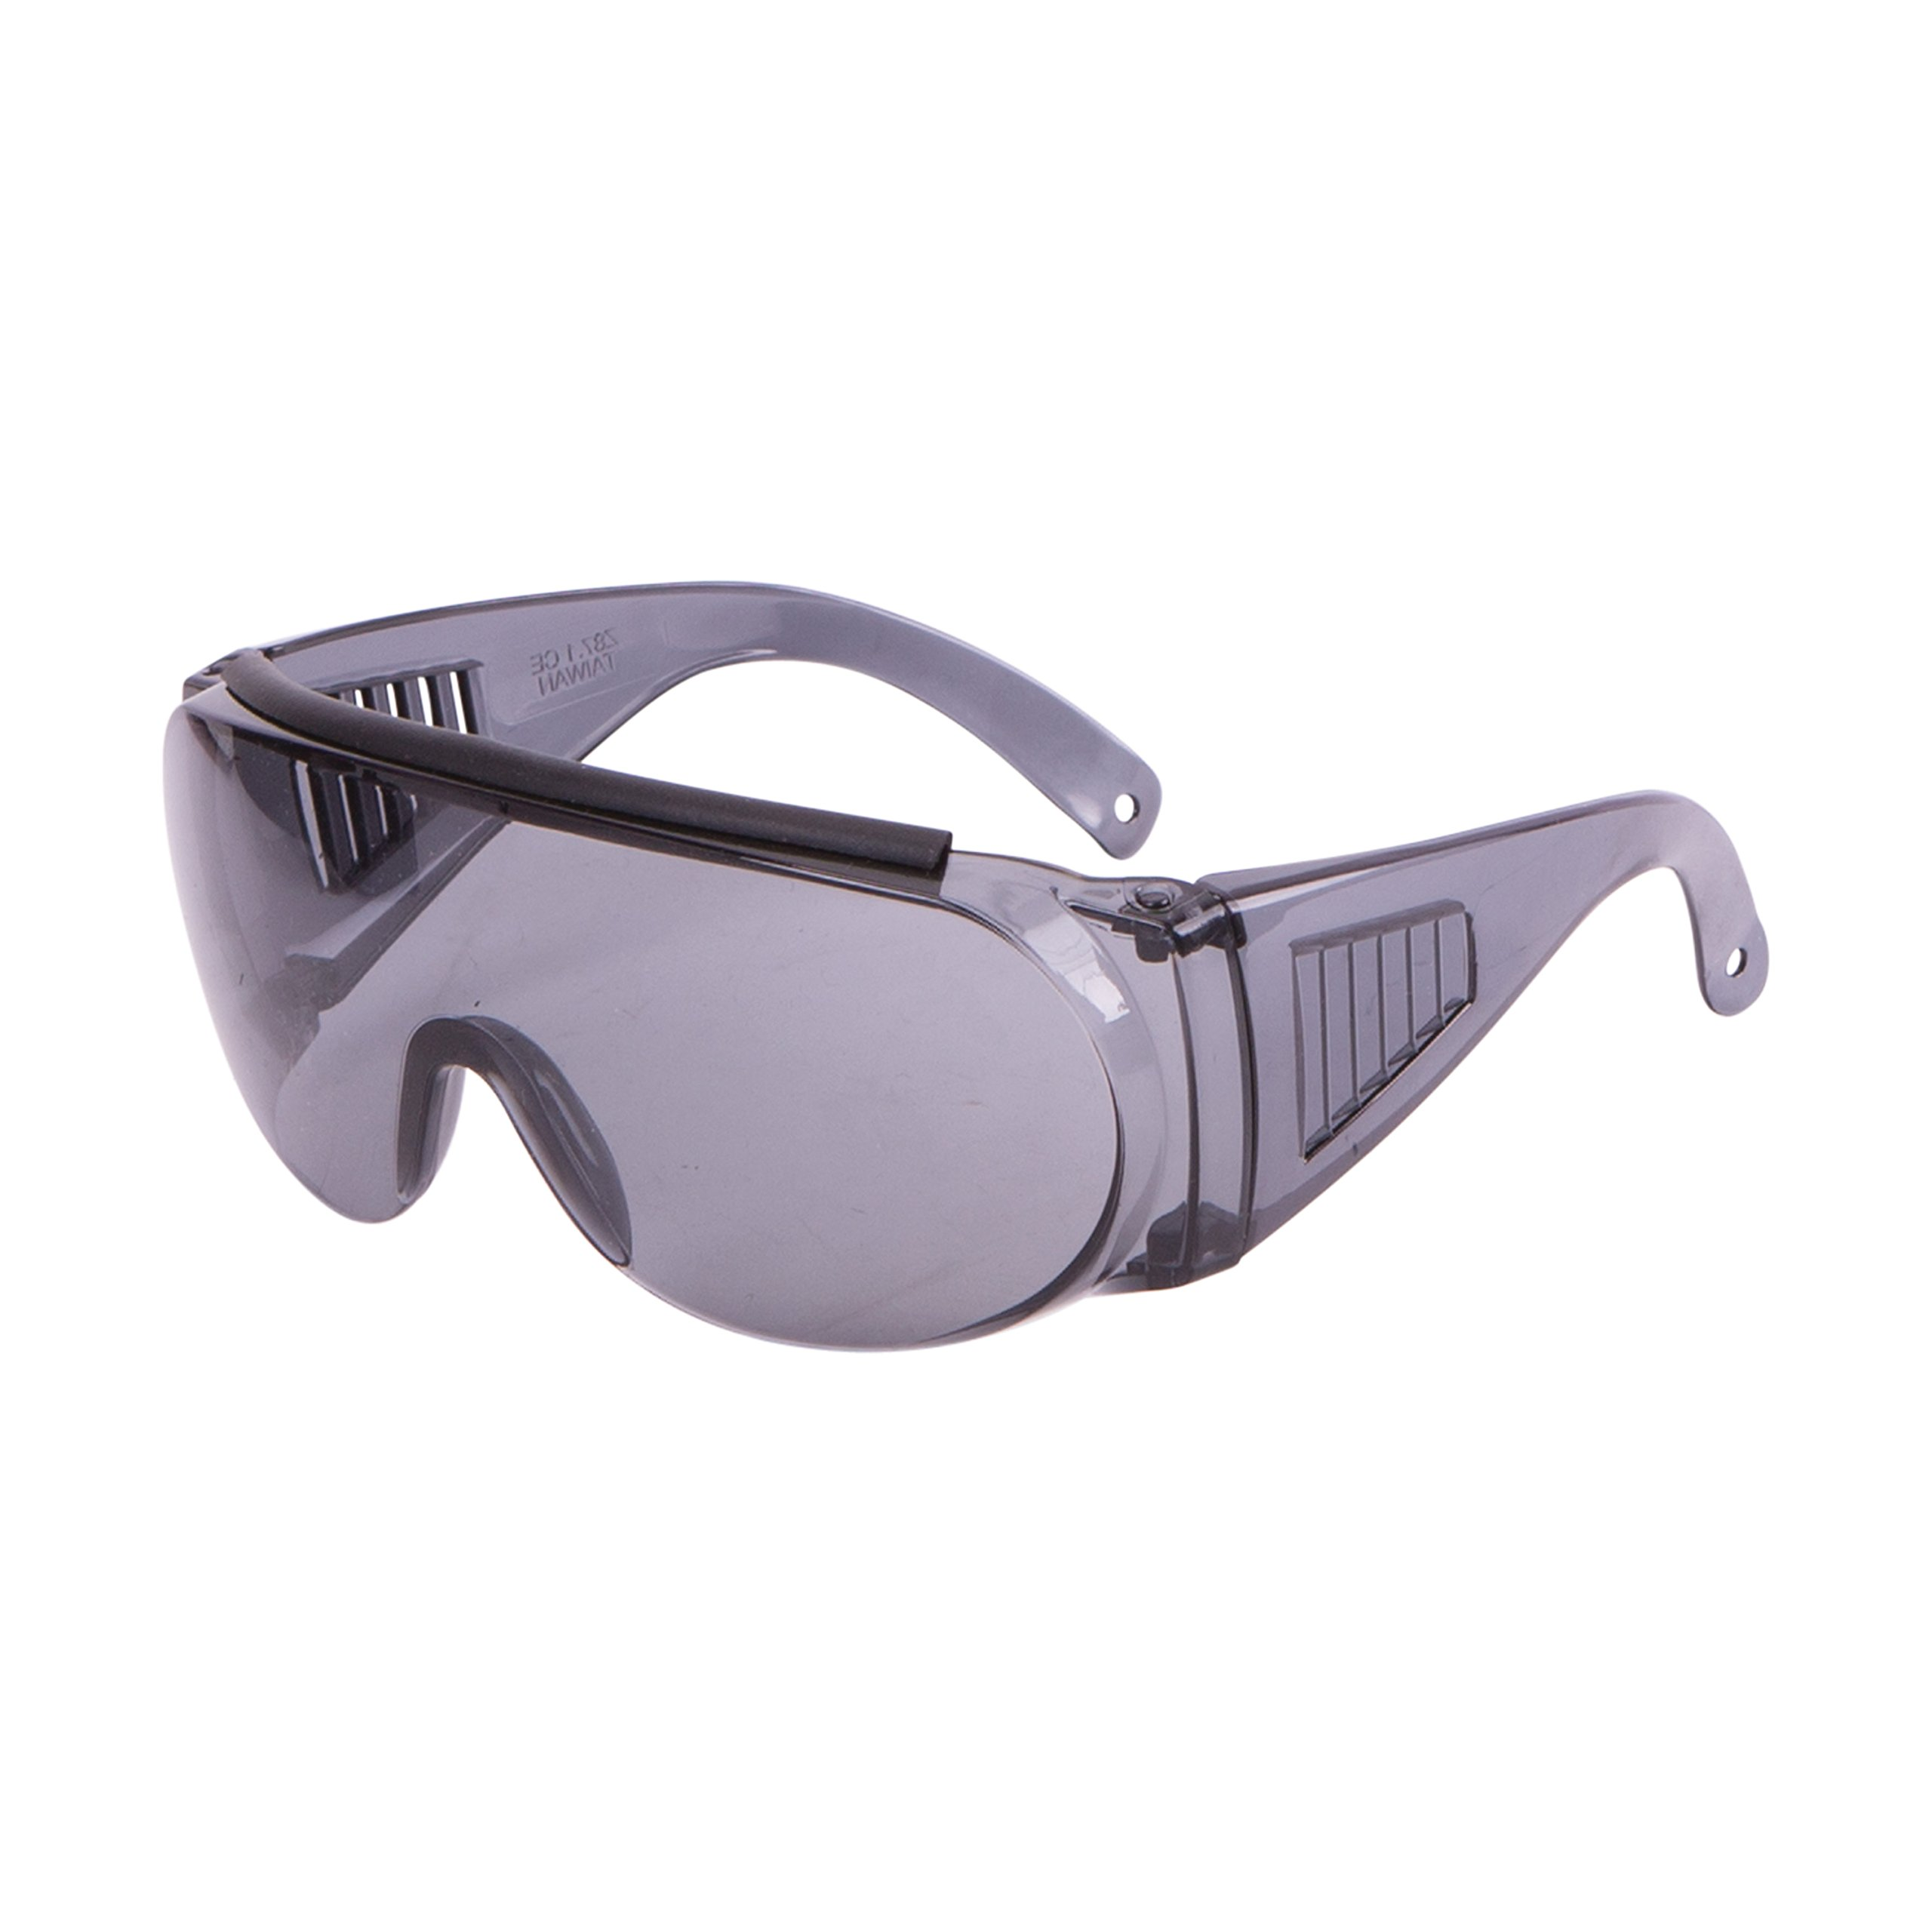 Allen Over Shooting & Safety Glass for Use with Prescription, Mirror Smoke